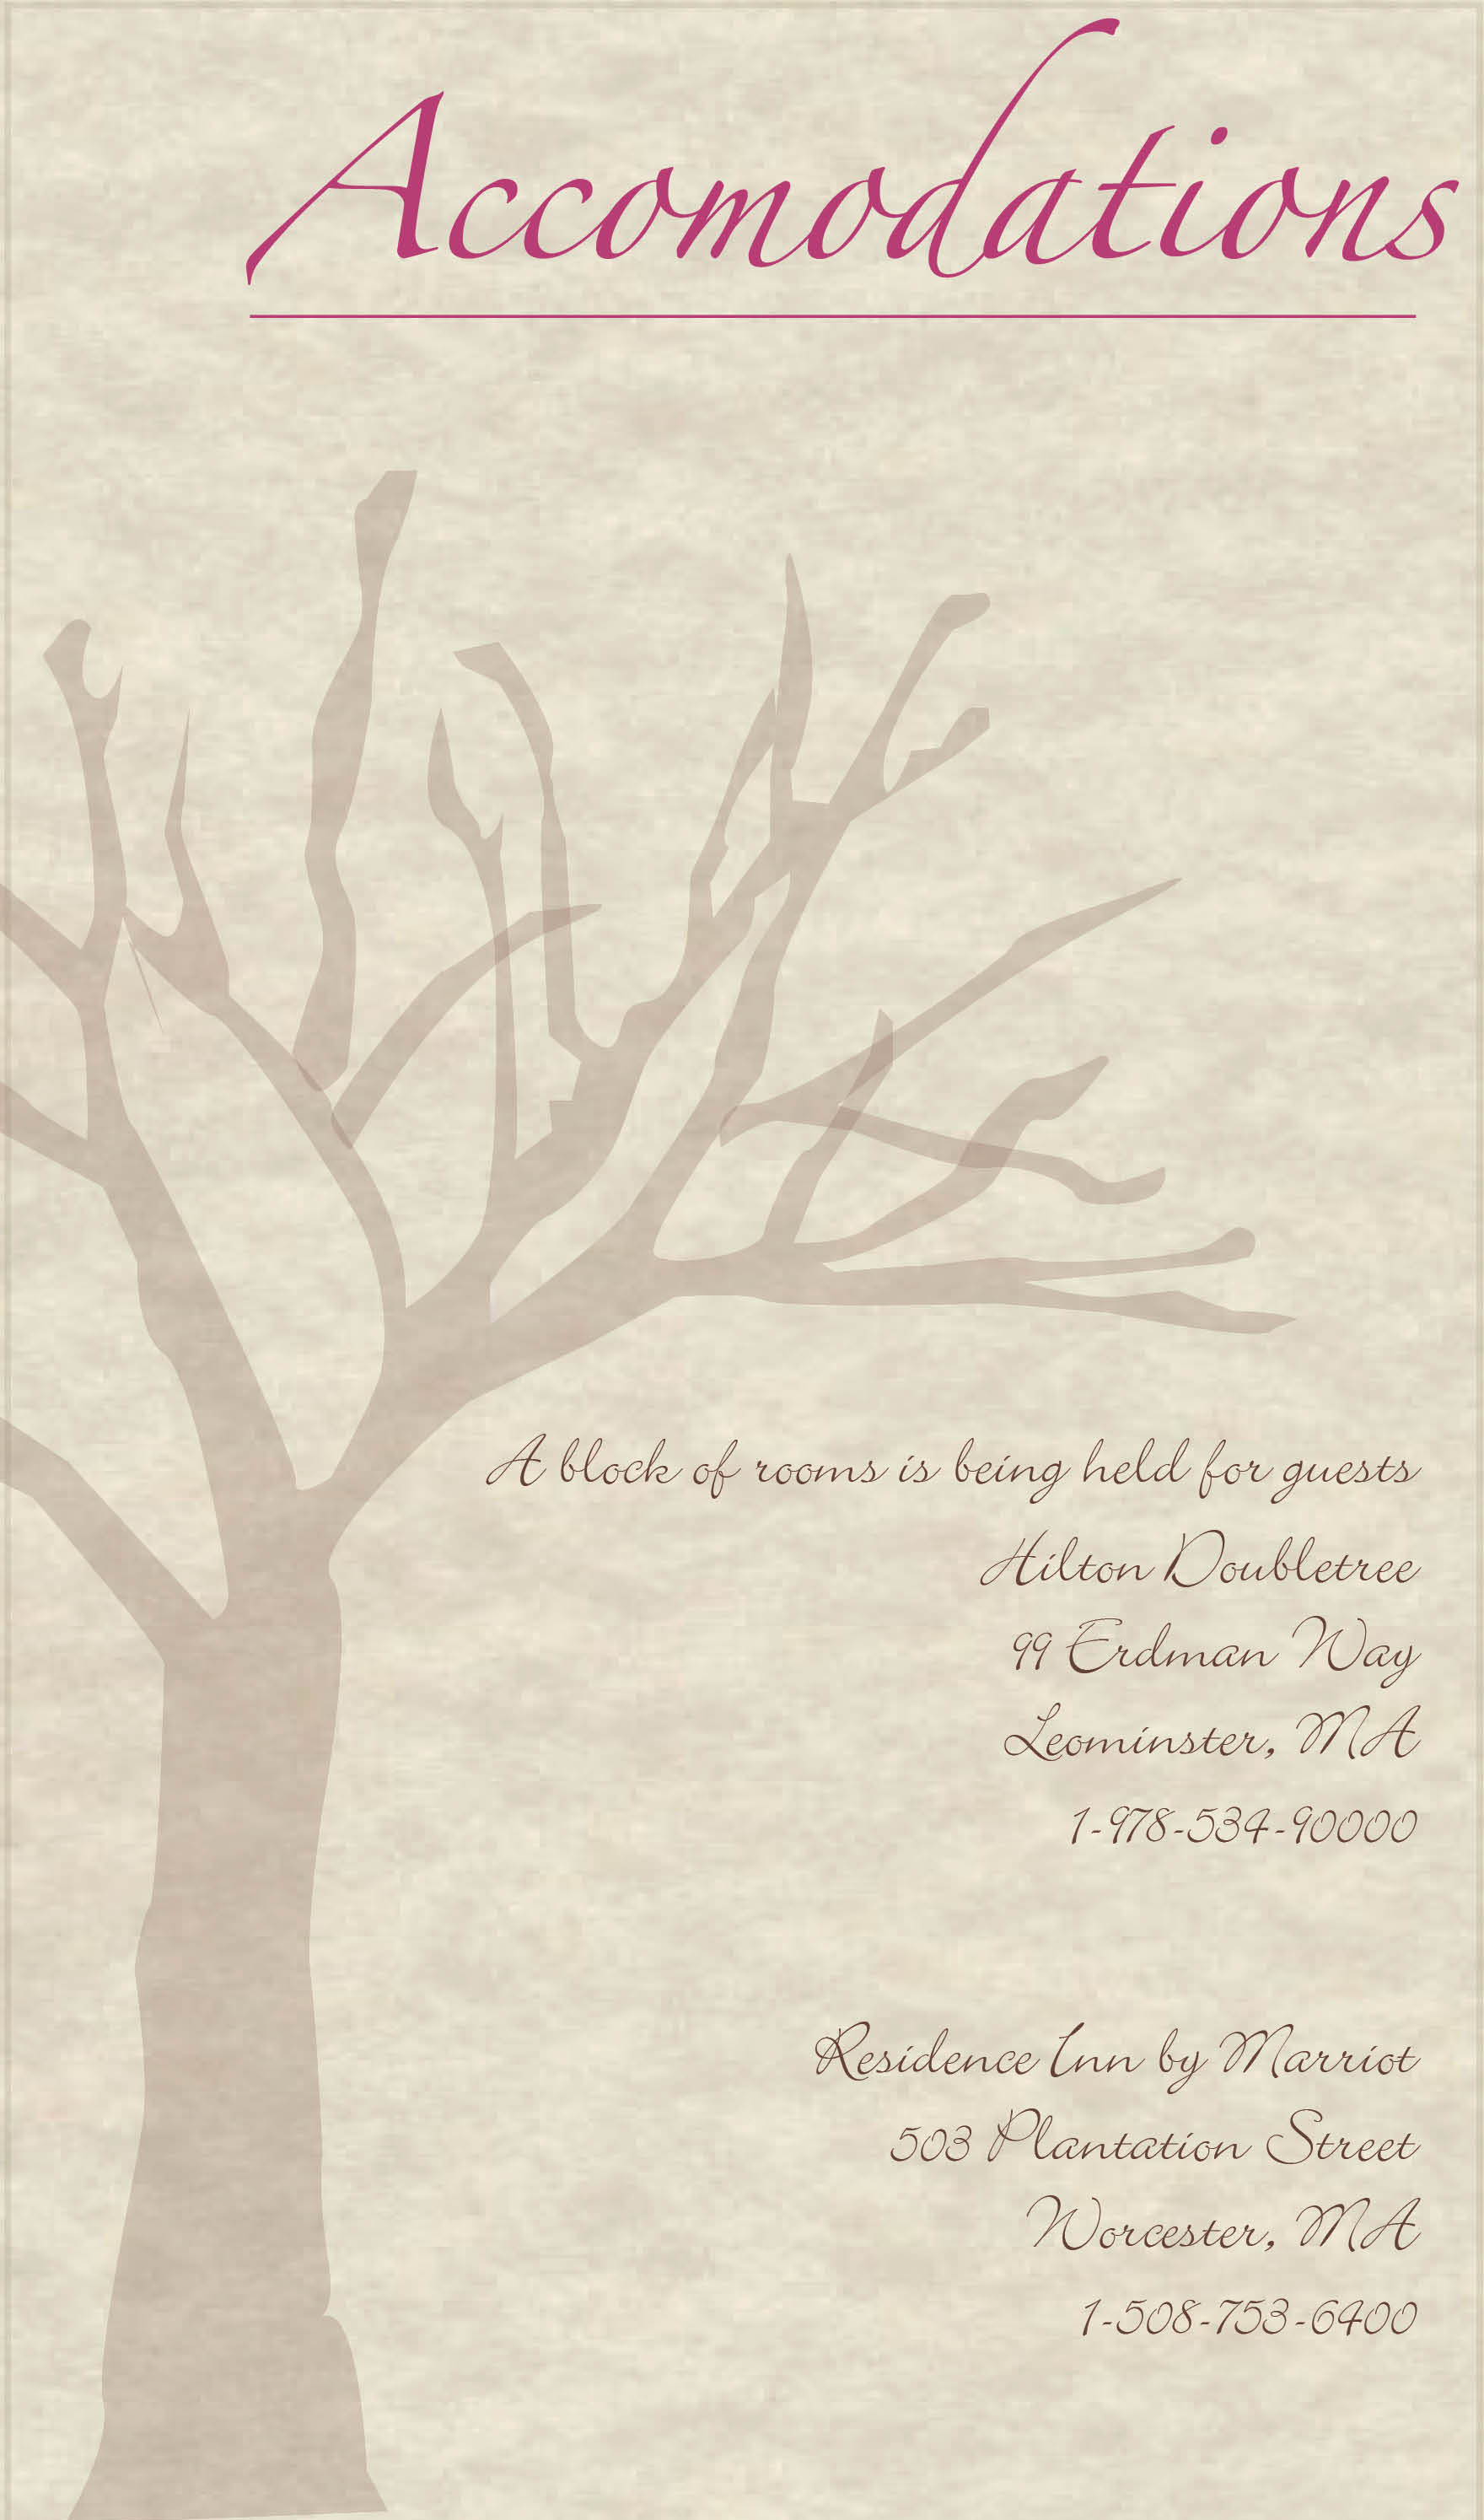 Rustic Elegance accommodations card